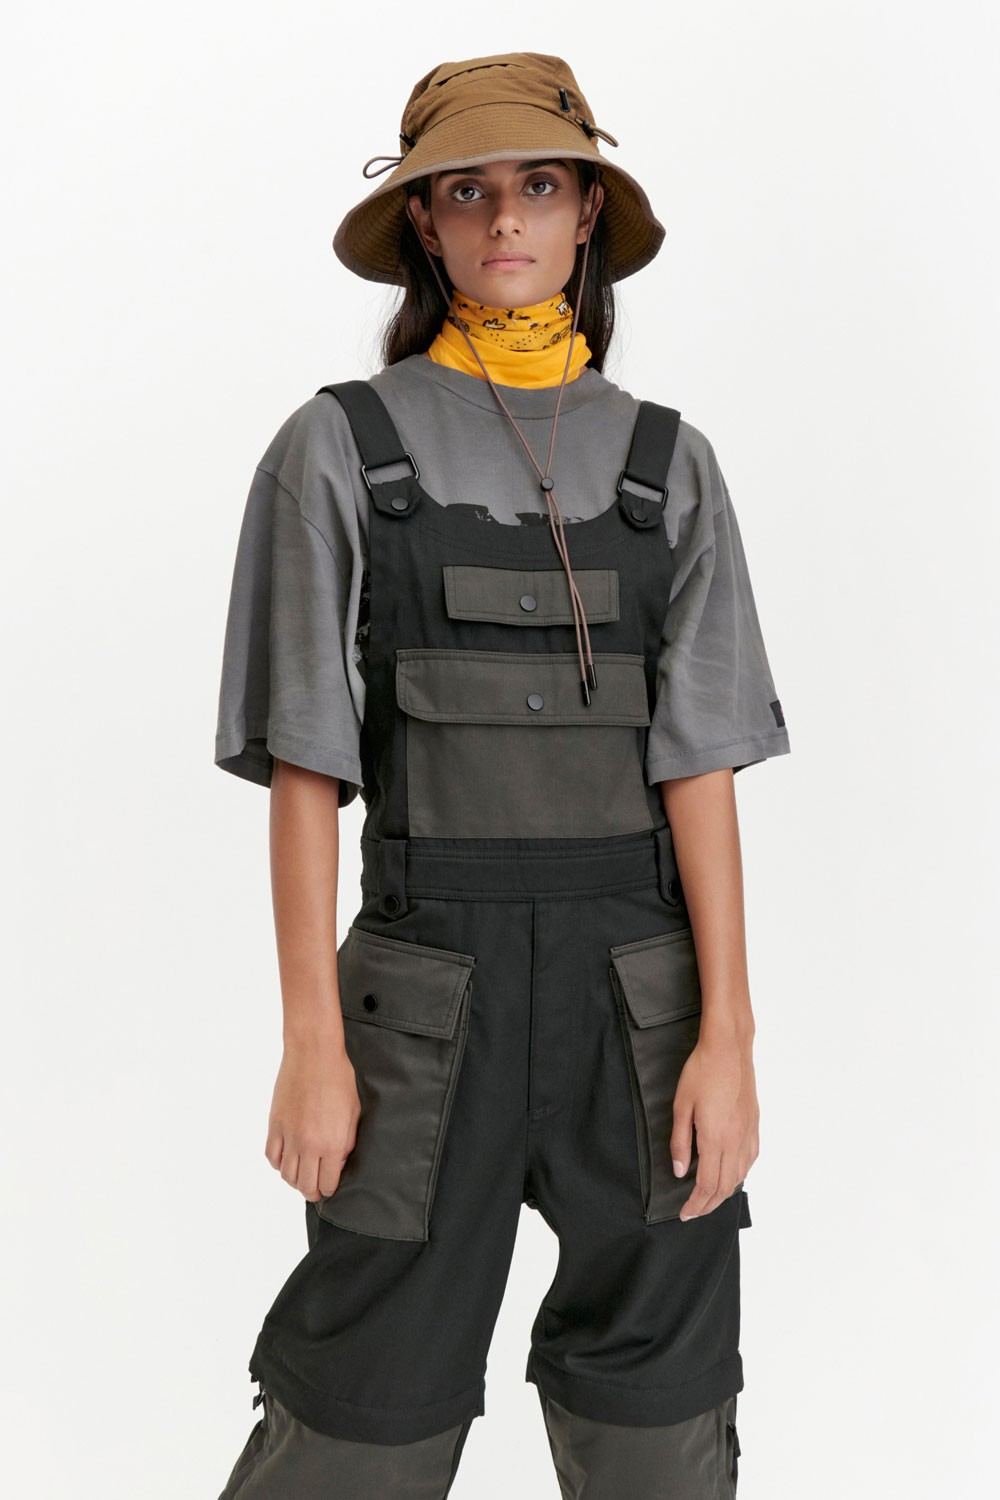 fiskars new capsule collection designer maria korkeila garden wear streetwear